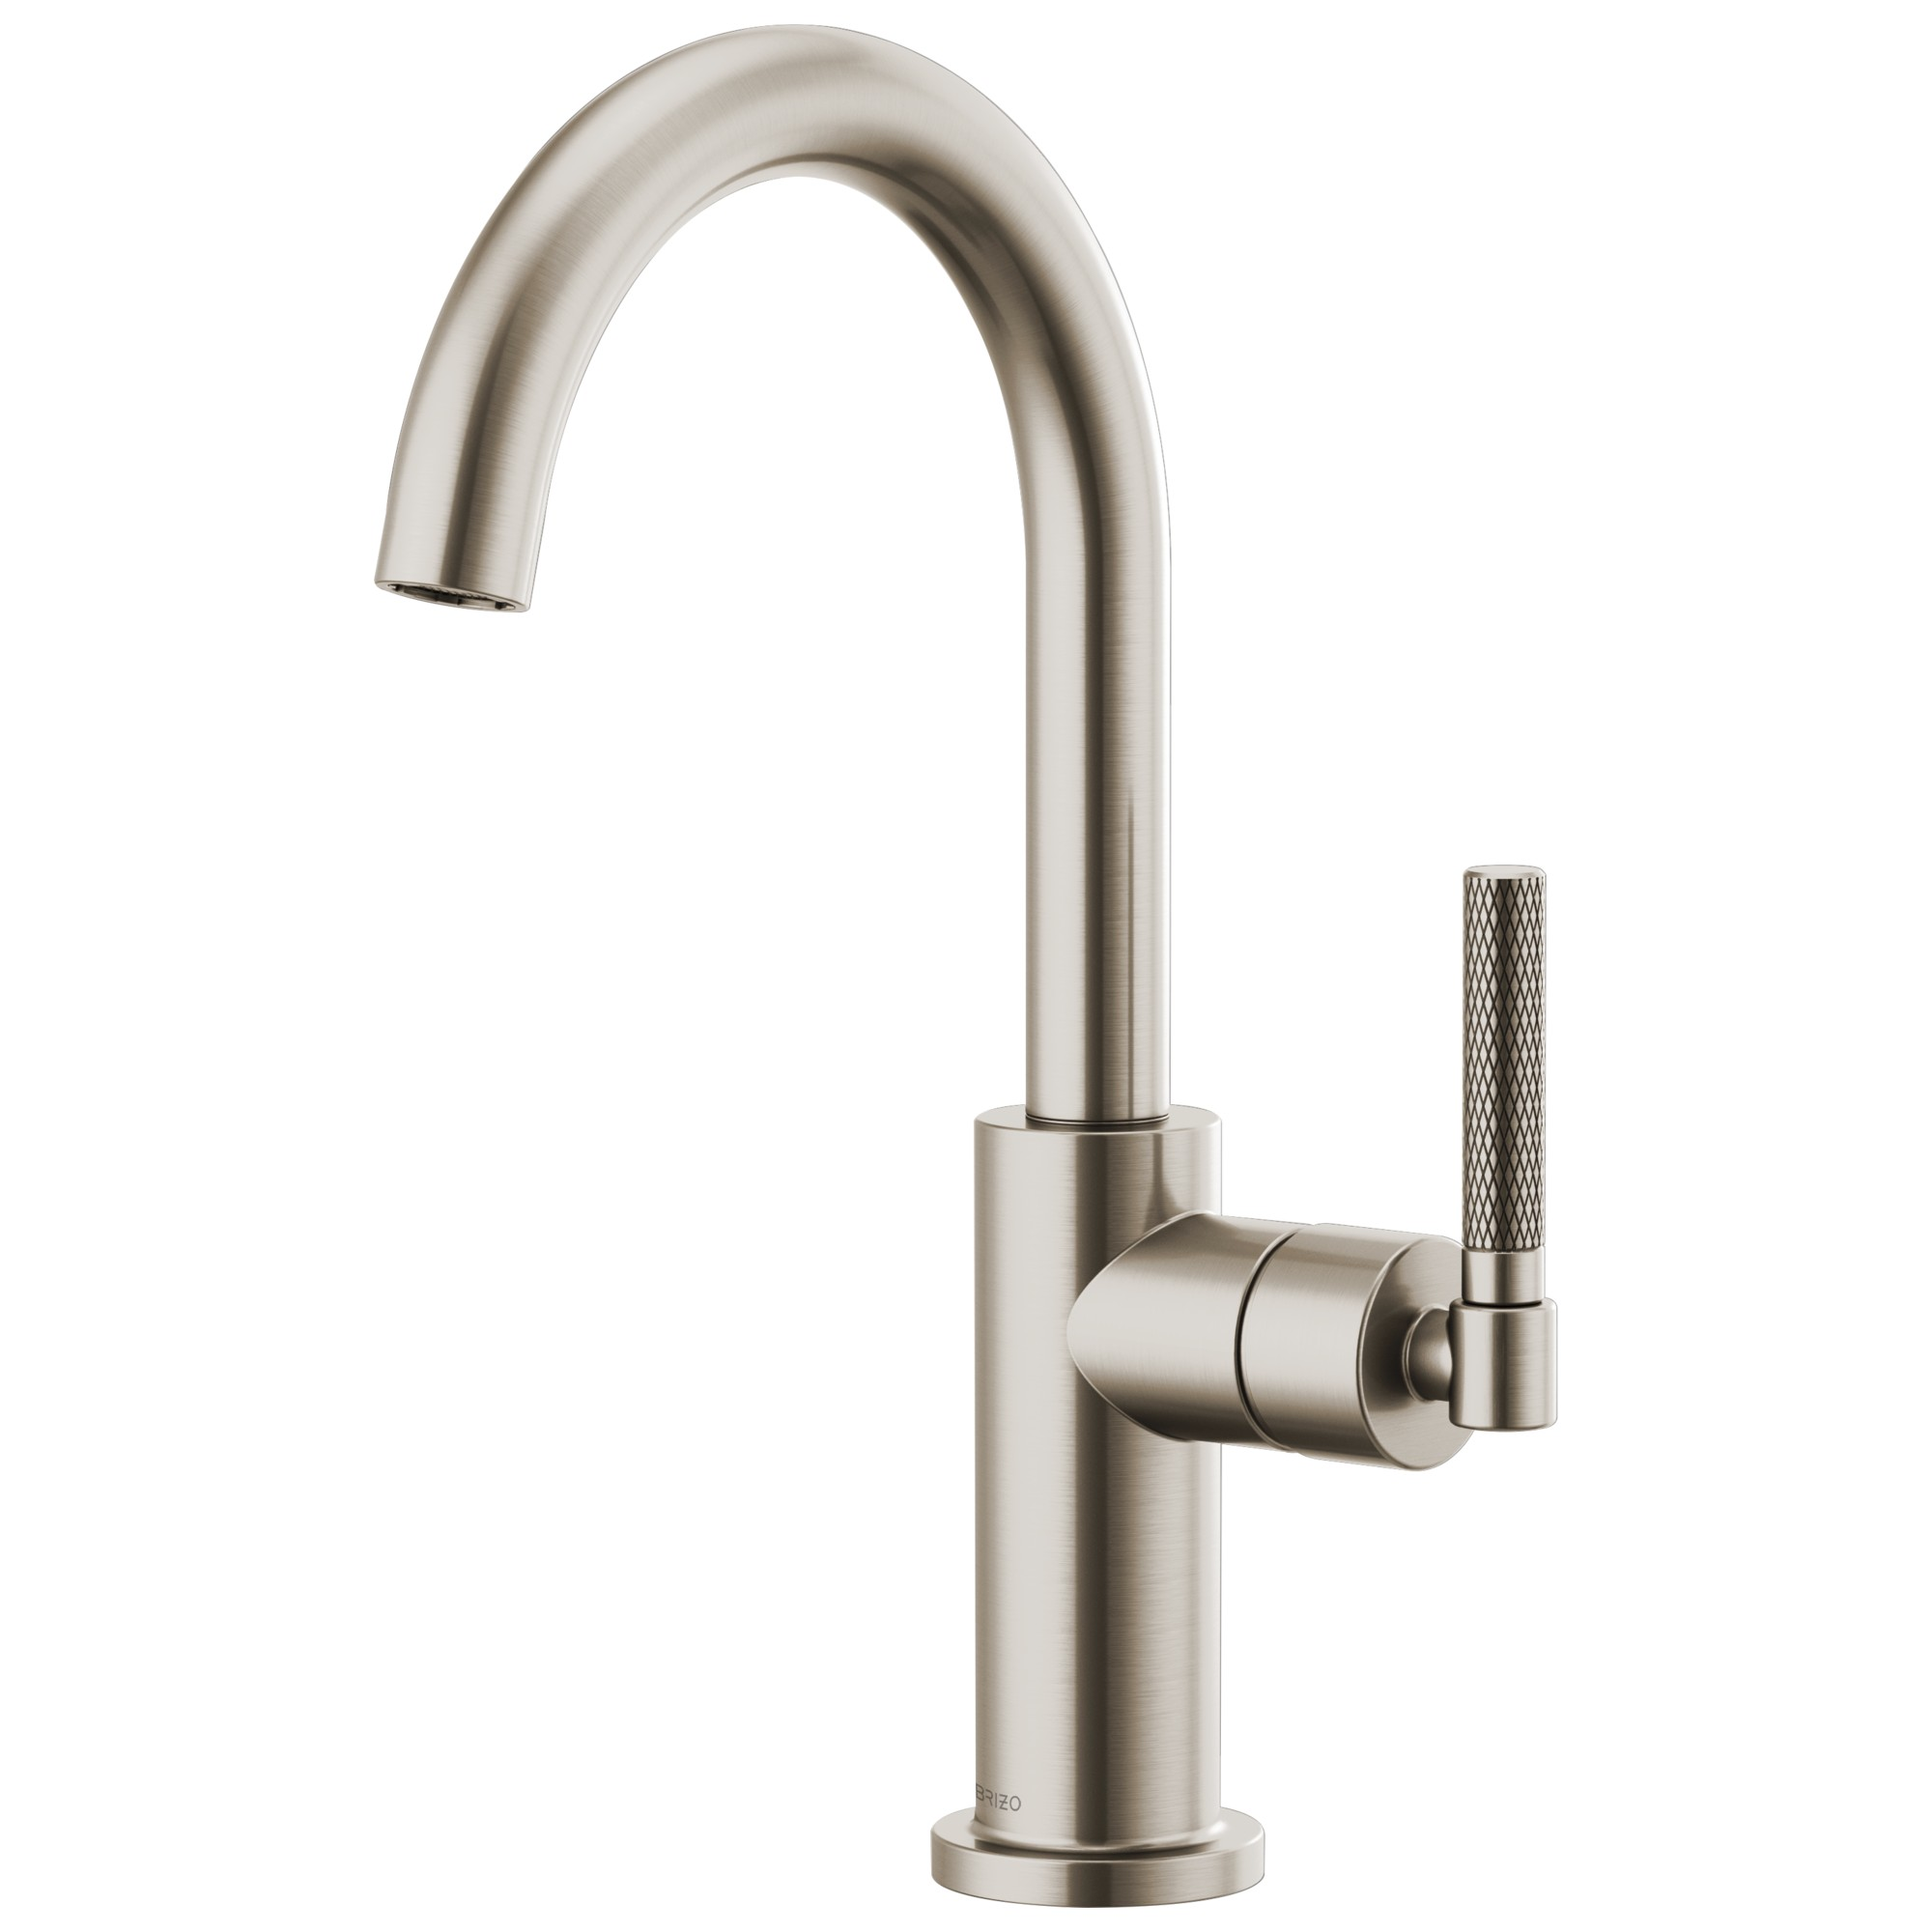 Brizo 61043LF-SS Litze Bar Faucet with Arc Spout and Knurled Handle - Stainless